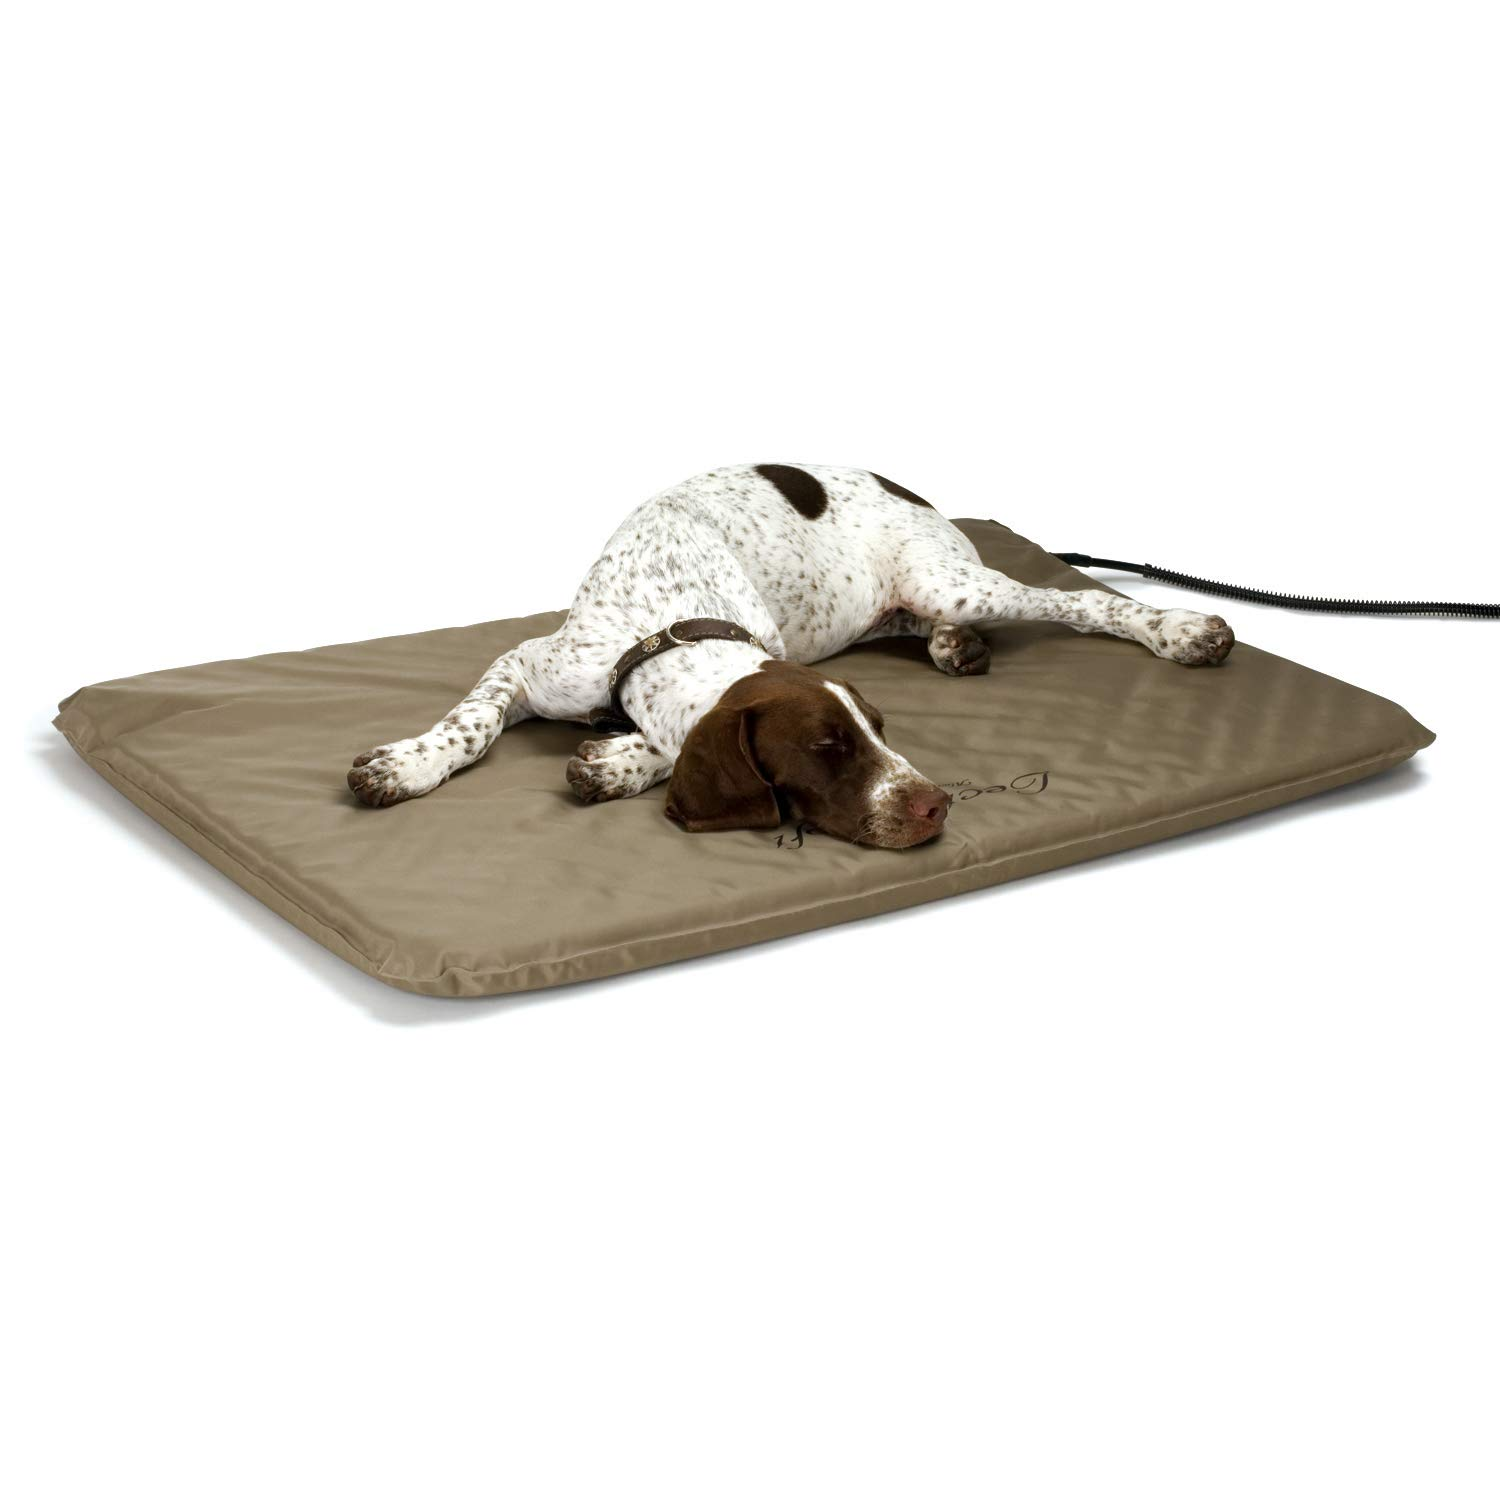 K H Pet Products Lectro-Soft Heated Outdoor Pet Bed, Tan, Large, 60W